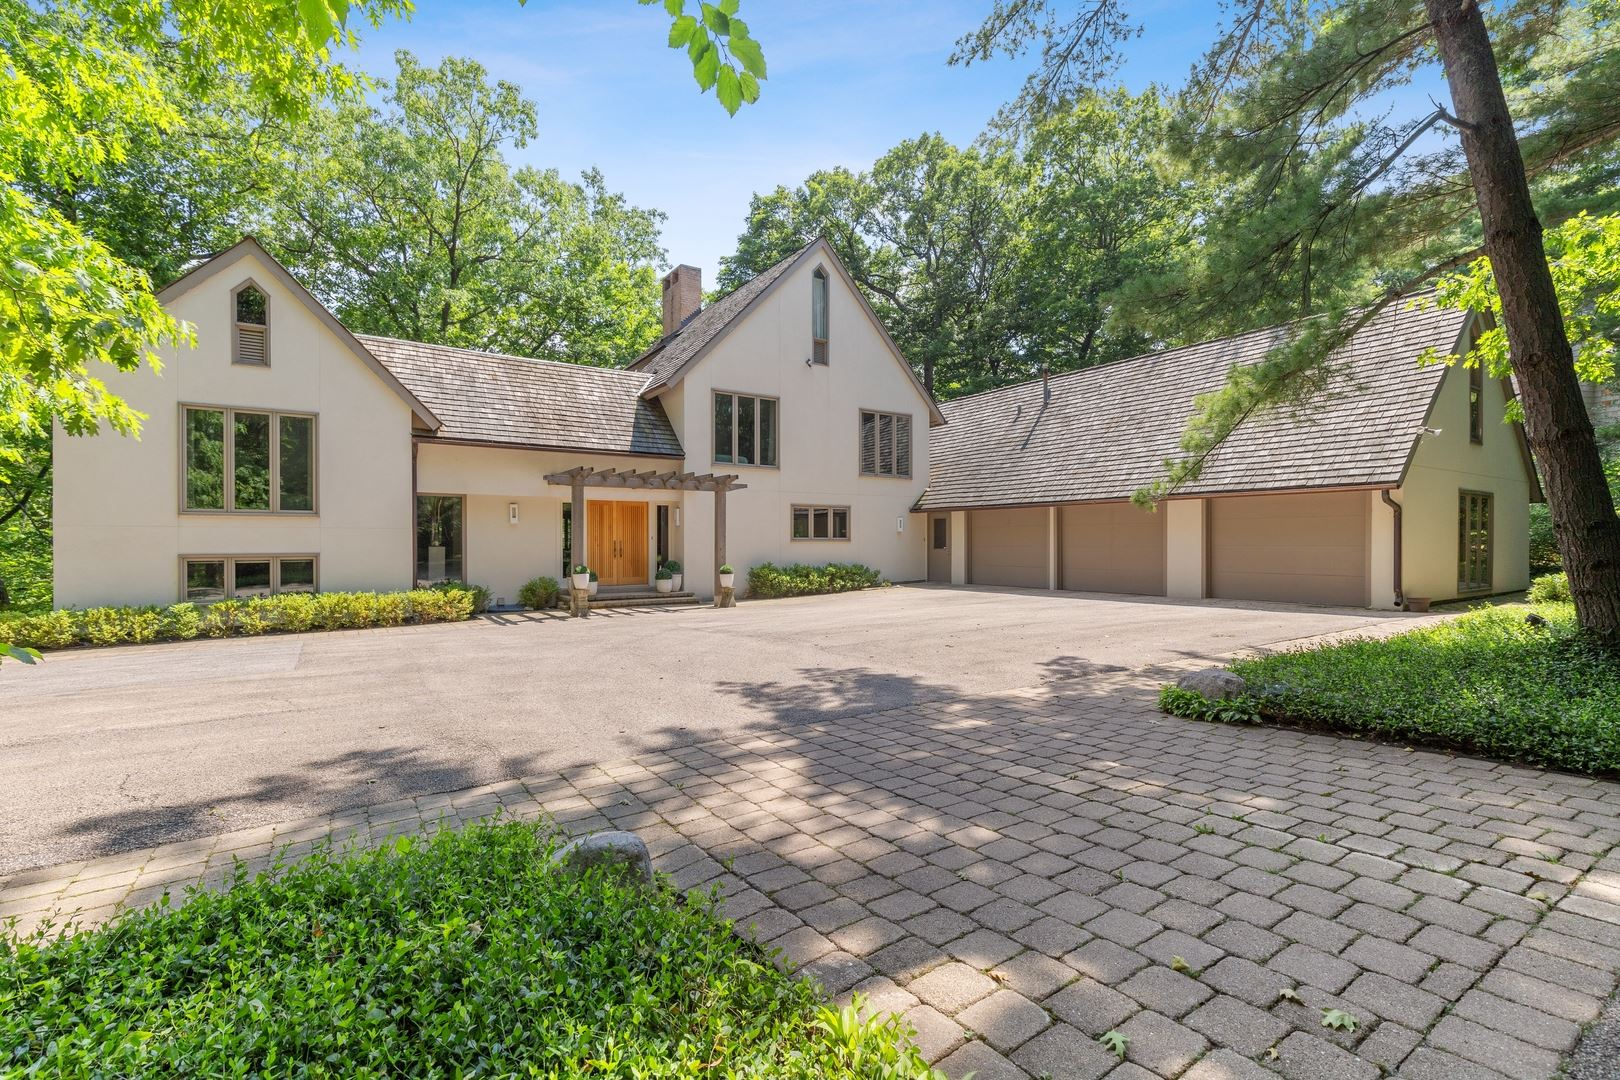 260 Overlook Drive, Lake Forest, IL 60045 - #: 11152740